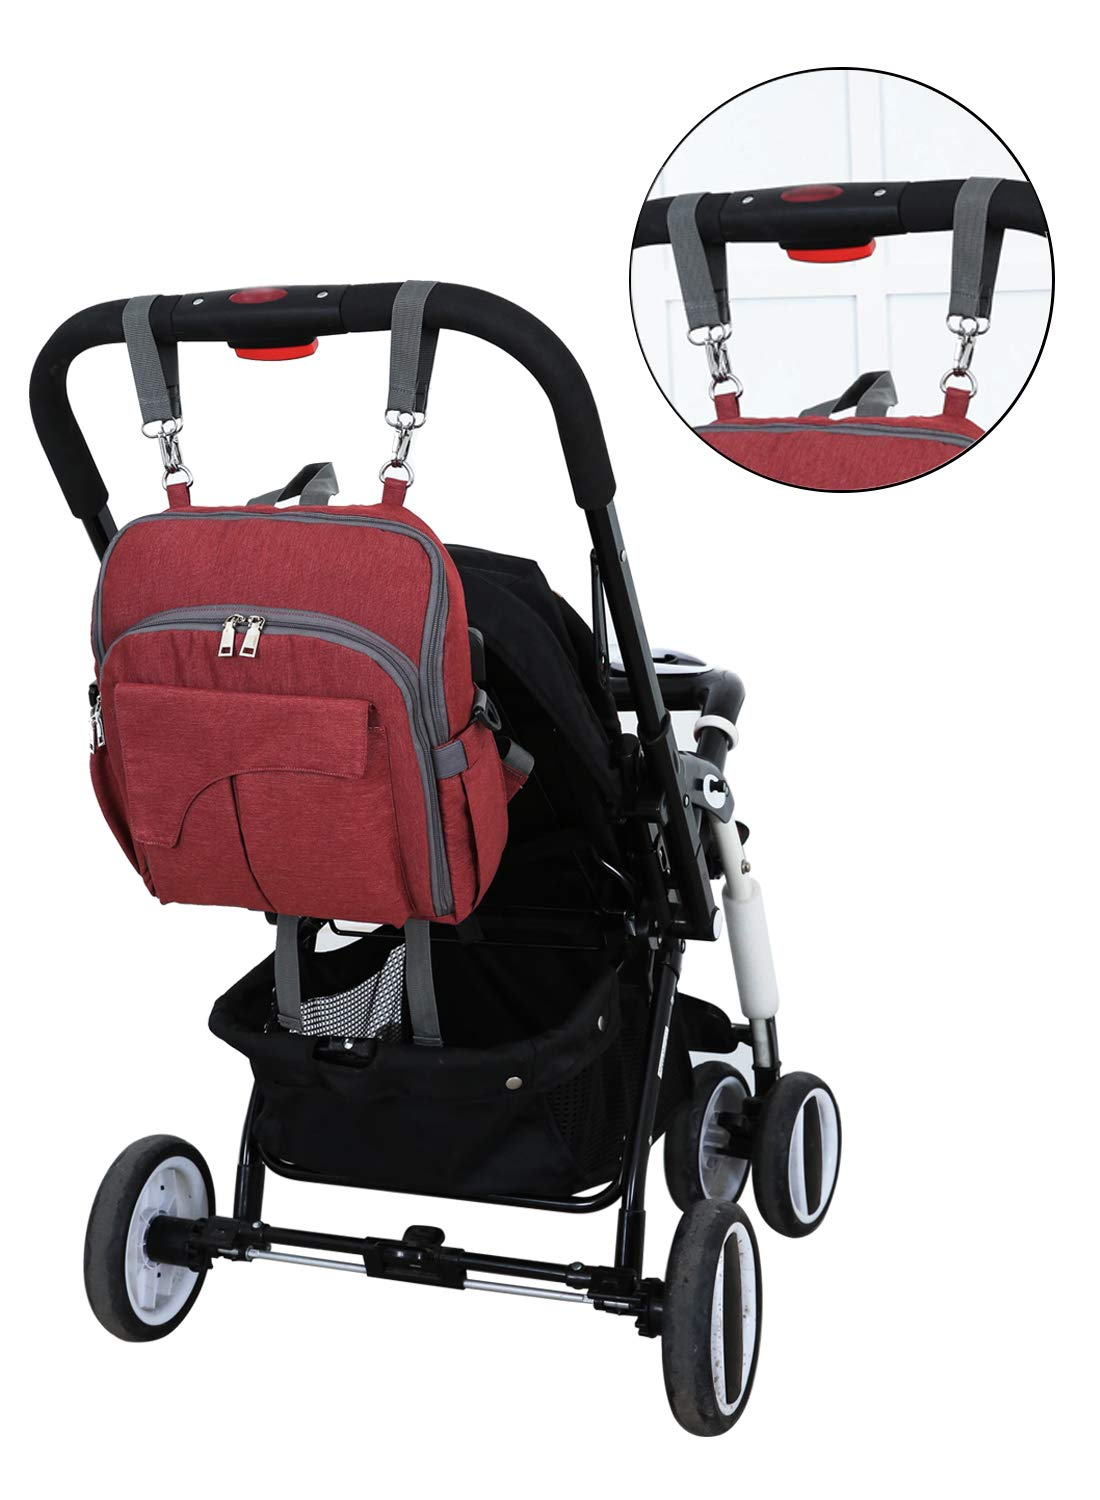 USB Charging Port Large Capacity Travel Backpacks Multi-use for Mom Baby Diaper Backpack with Front Baby Seat Waterproof Nappy Changing Bag Red Dad